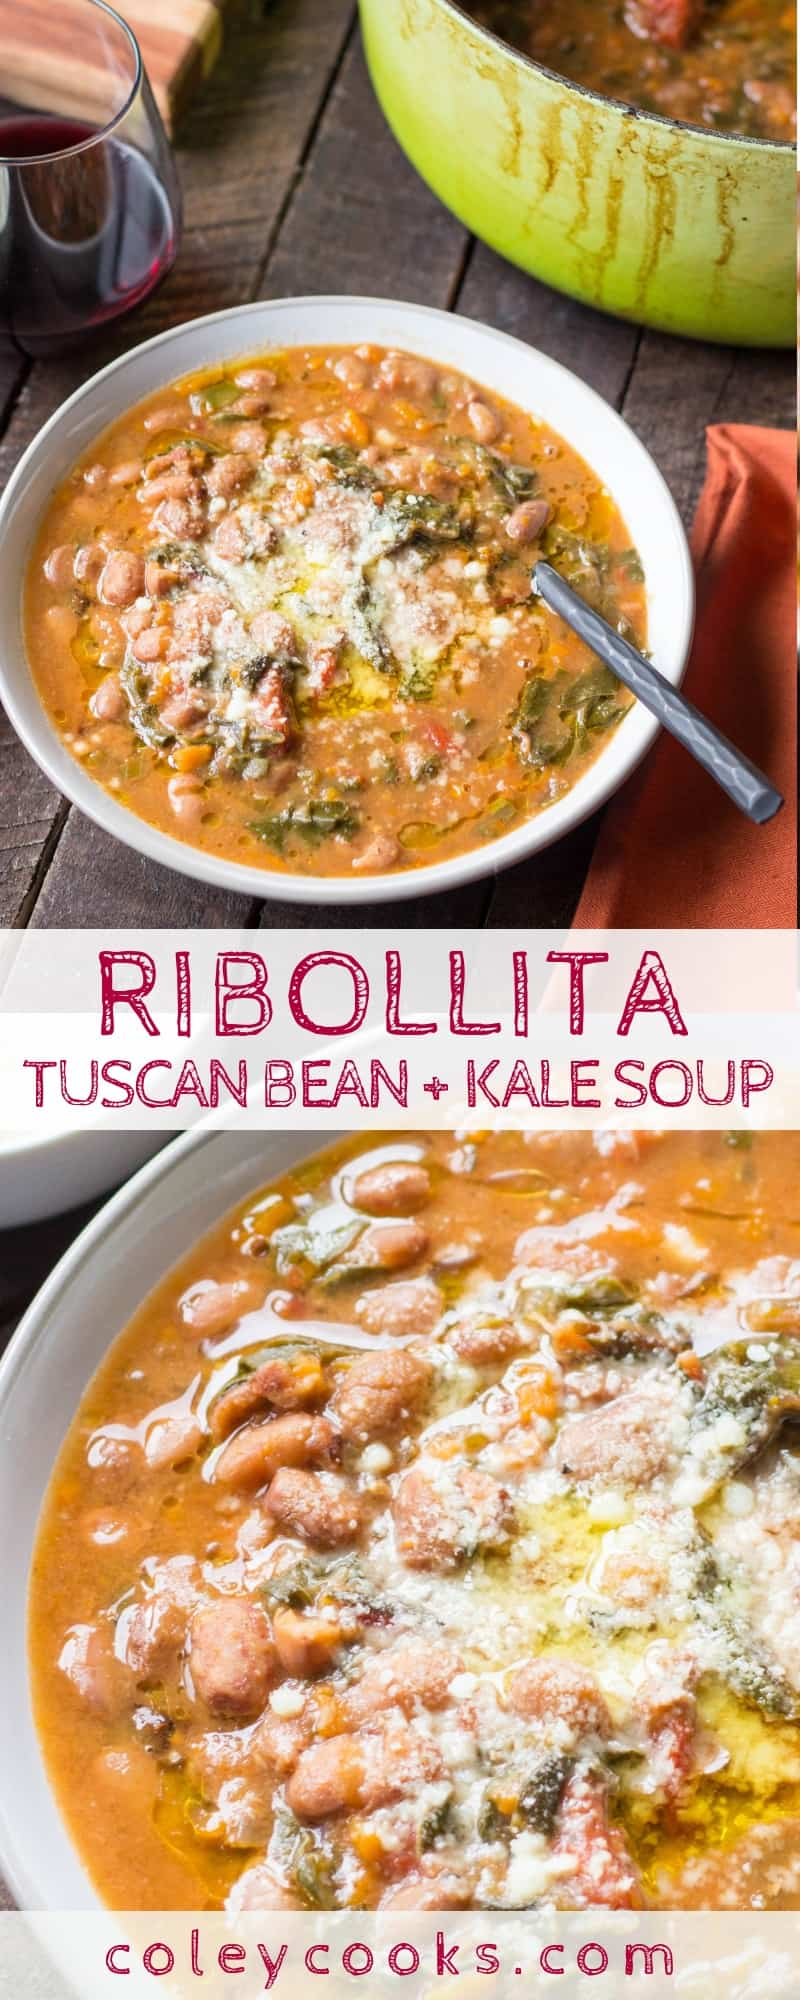 RIBOLLITA: TUSCAN BEAN + KALE SOUP | This classic Tuscan bean and kale soup makes a delicious and healthy winter dinner! #soup #italian #tuscan #ribollita #recipe #winter #fall #beans #kale #beansoup | ColeyCooks.com